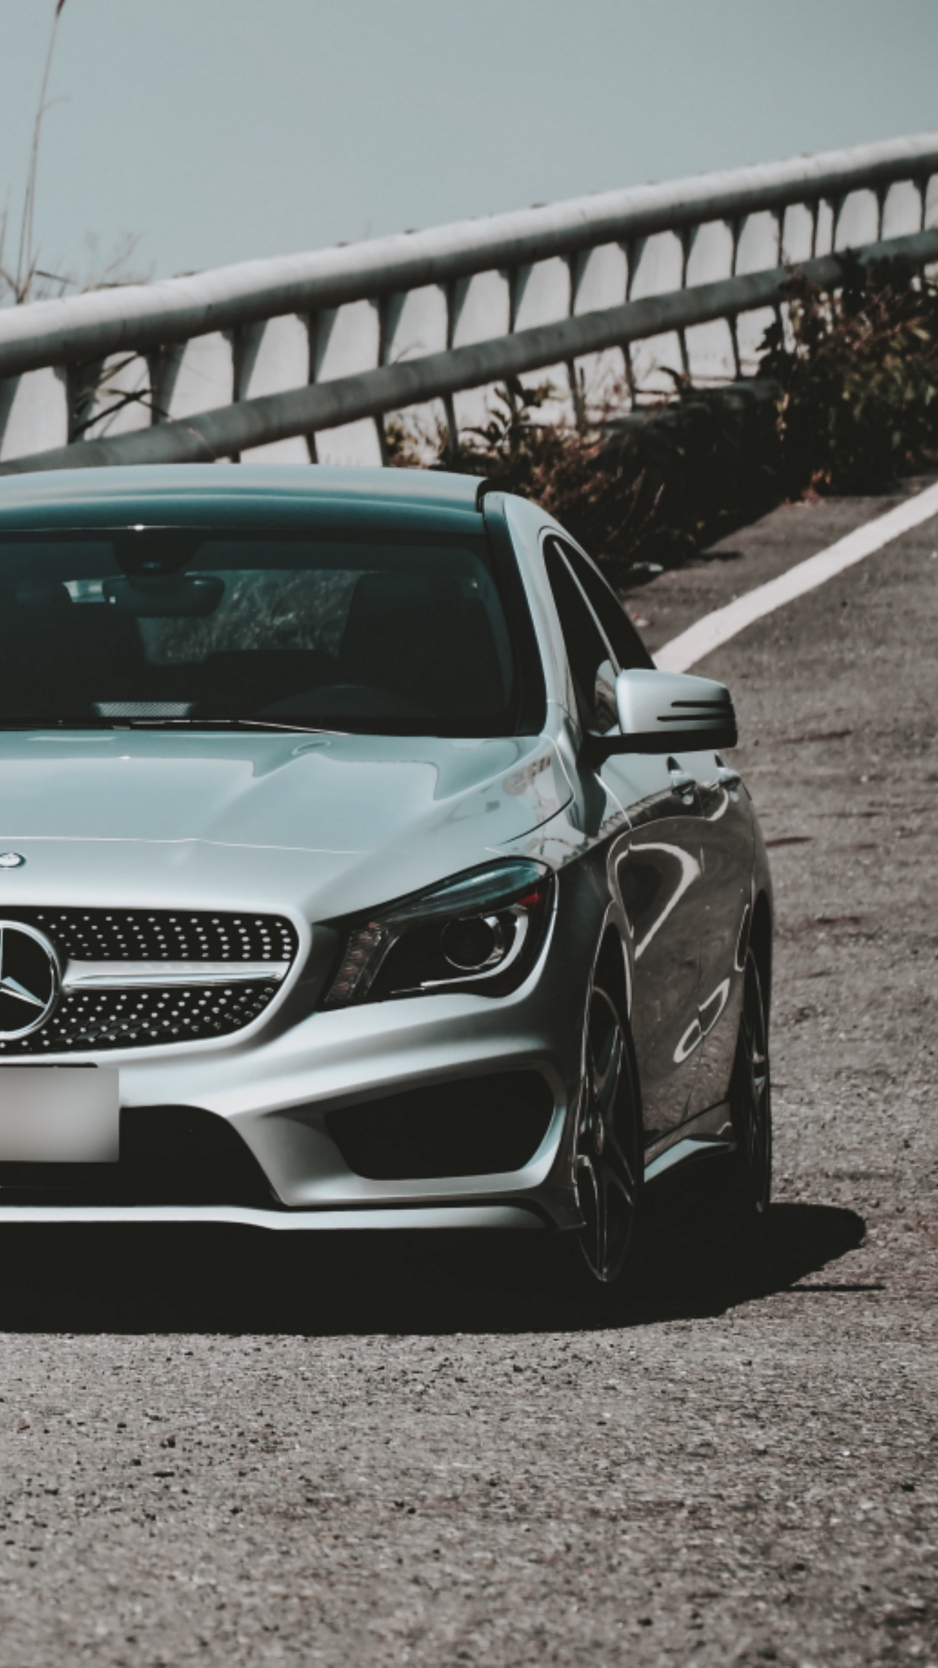 Download wallpaper 938x1668 mercedes benz cla class mercedes benz 938x1668